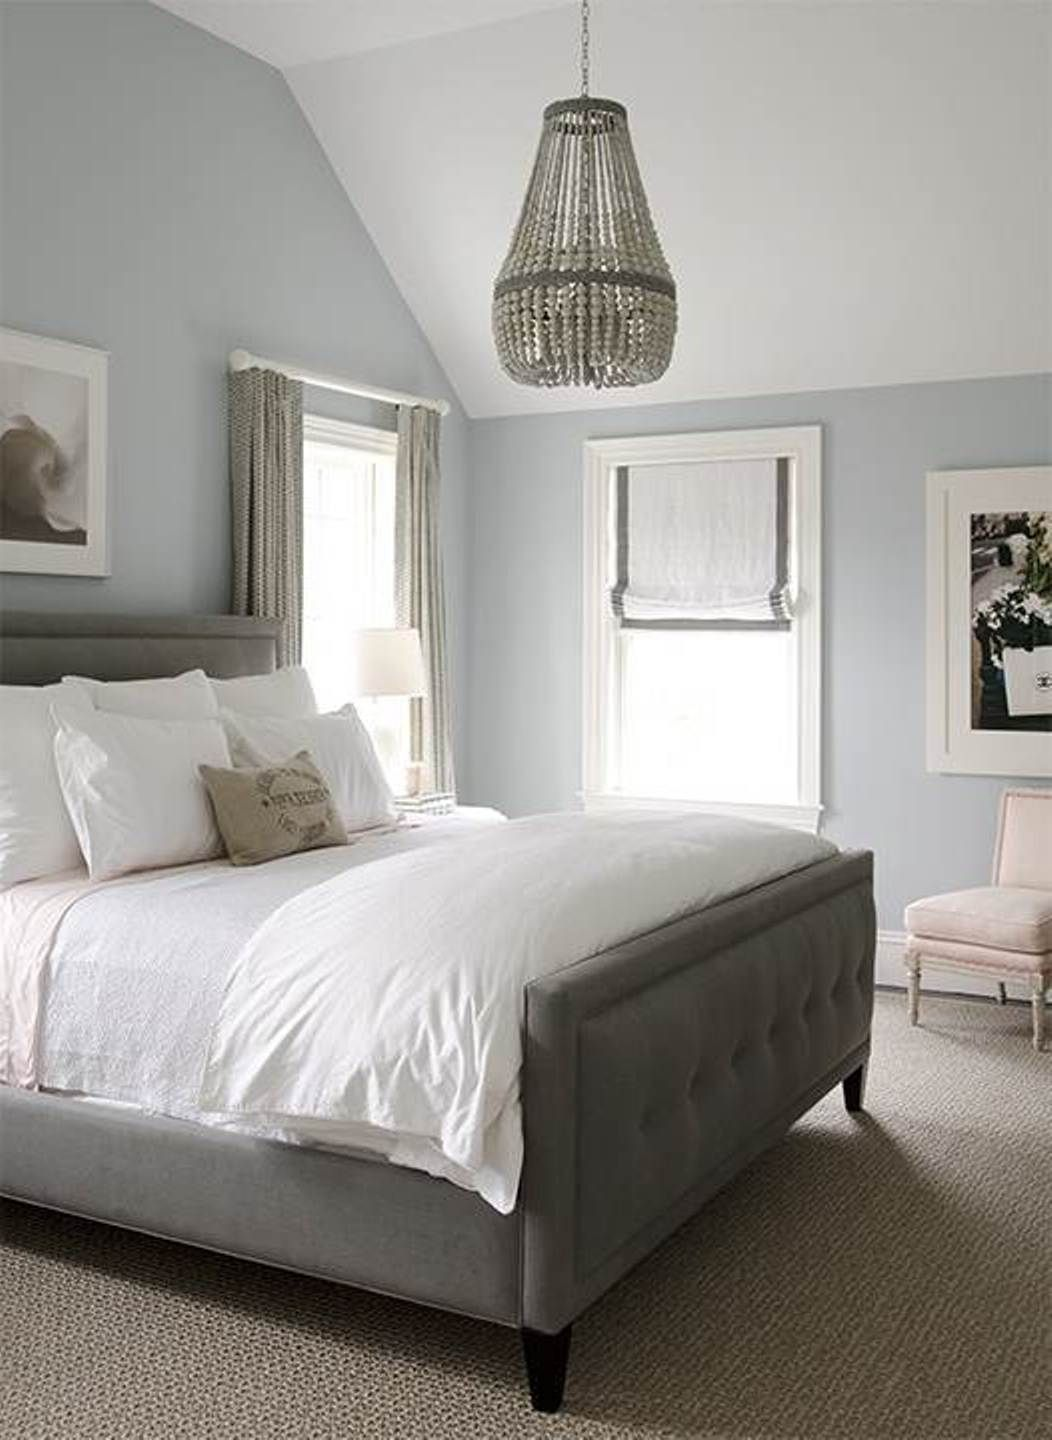 love the grey cute master bedroom ideas on a budget decorating love the grey cute master bedroom ideas on a budget decorating master bedroom ideas